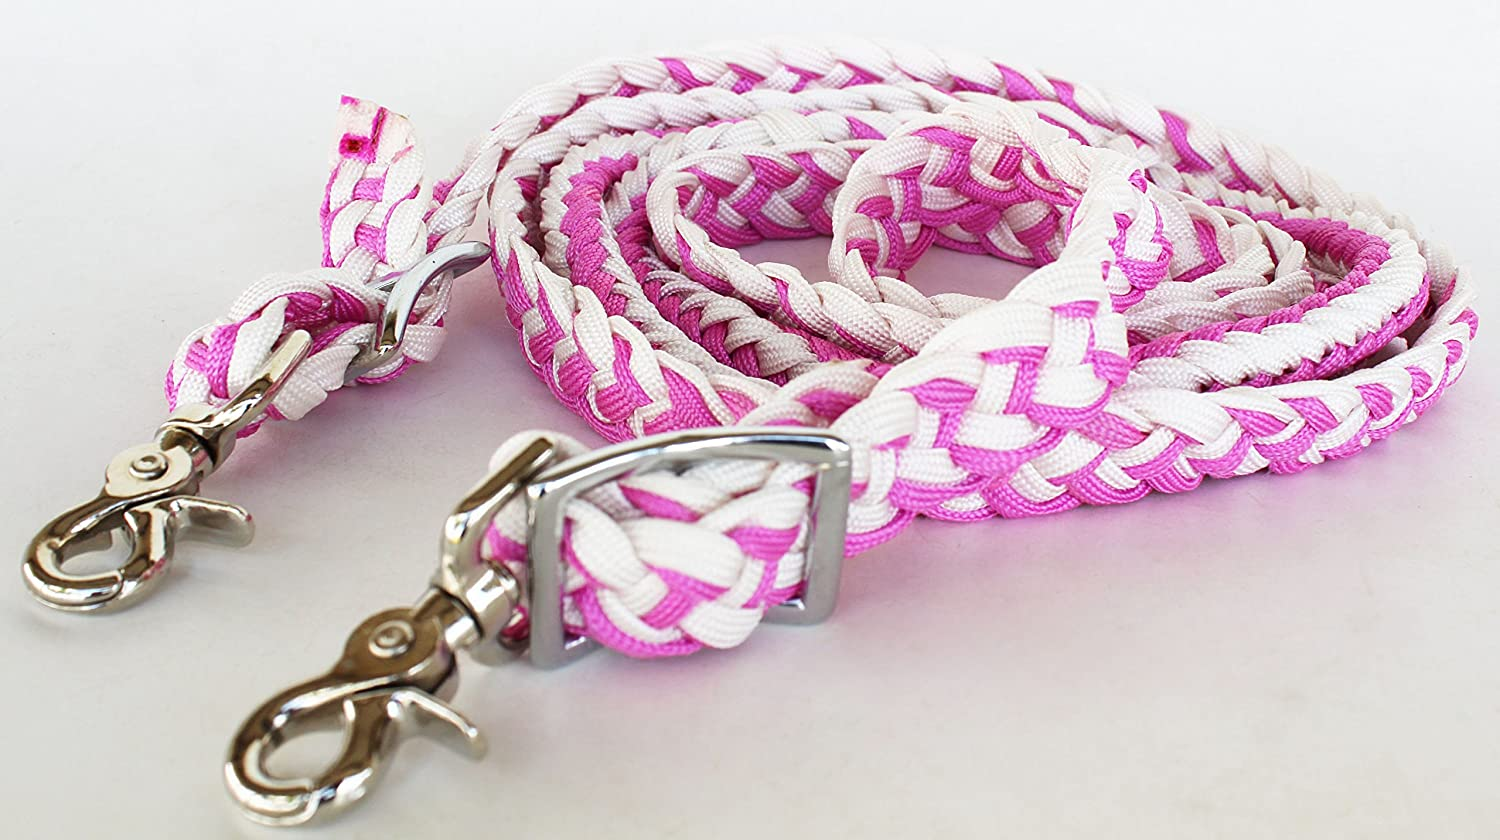 Roping Knotted Horse Tack Western Barrel Reins Nylon Braided Pink 60702   B00NETLUVC